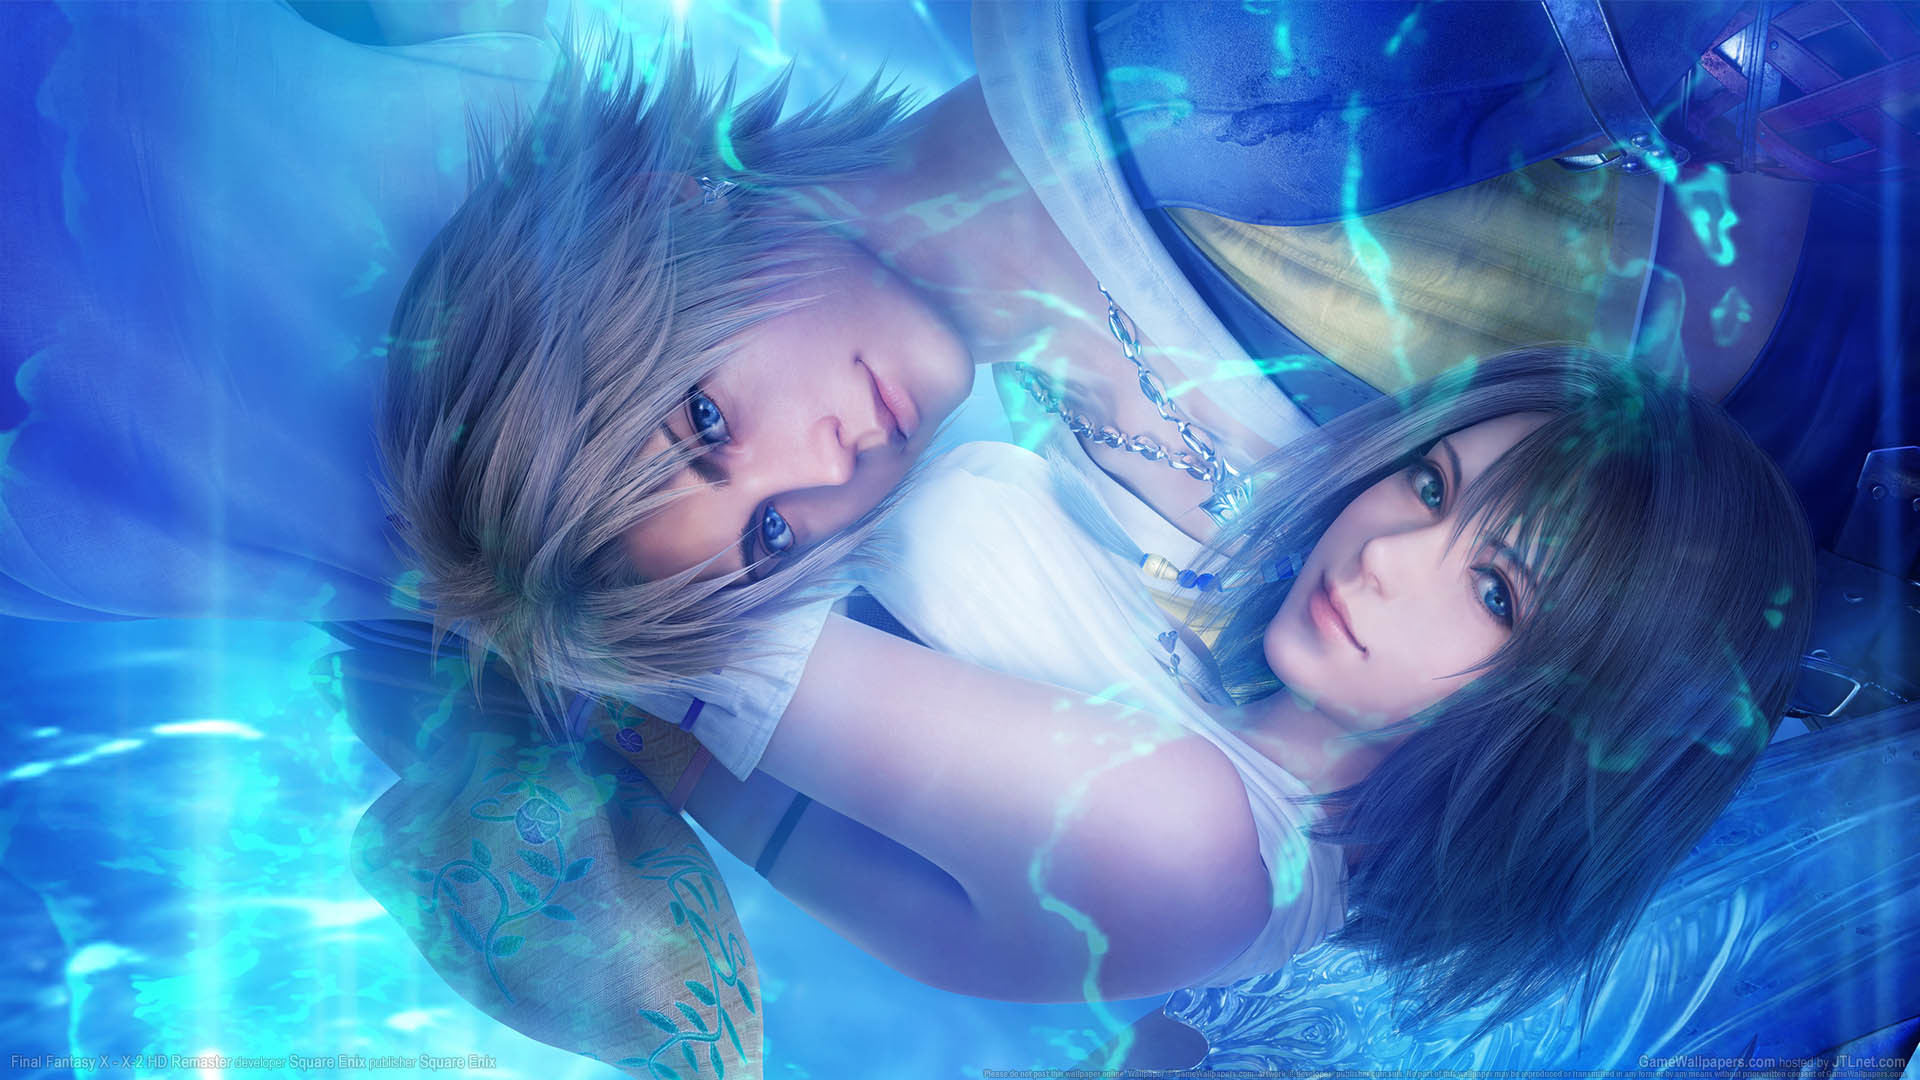 1920x1080 ... Final Fantasy X - X-2 HD wallpaper or background 01